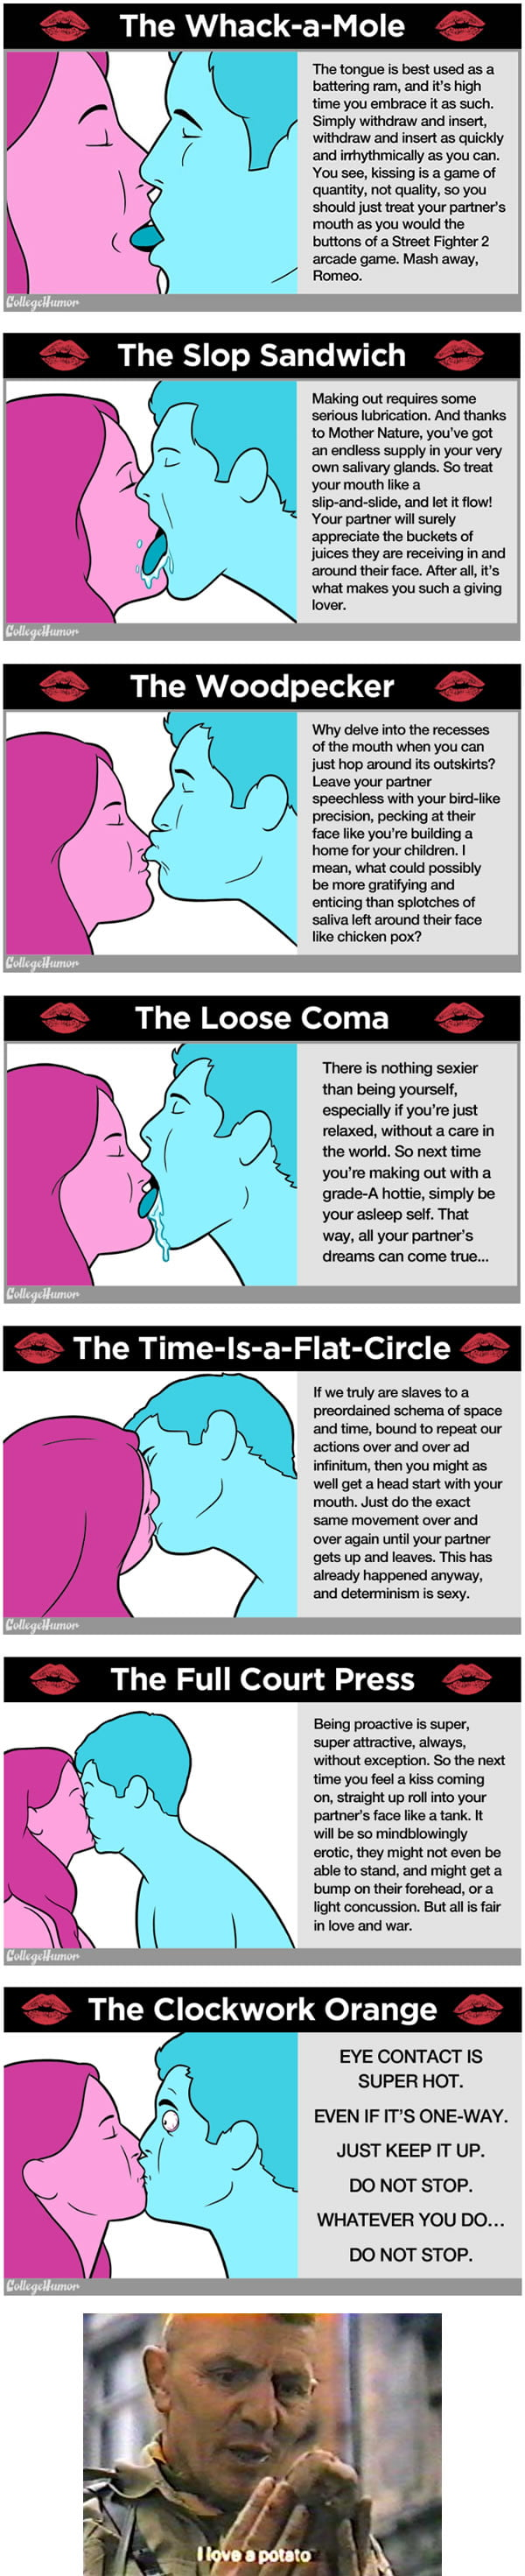 7 Kissing Tips to Take Your Smooch Game to the Next Level